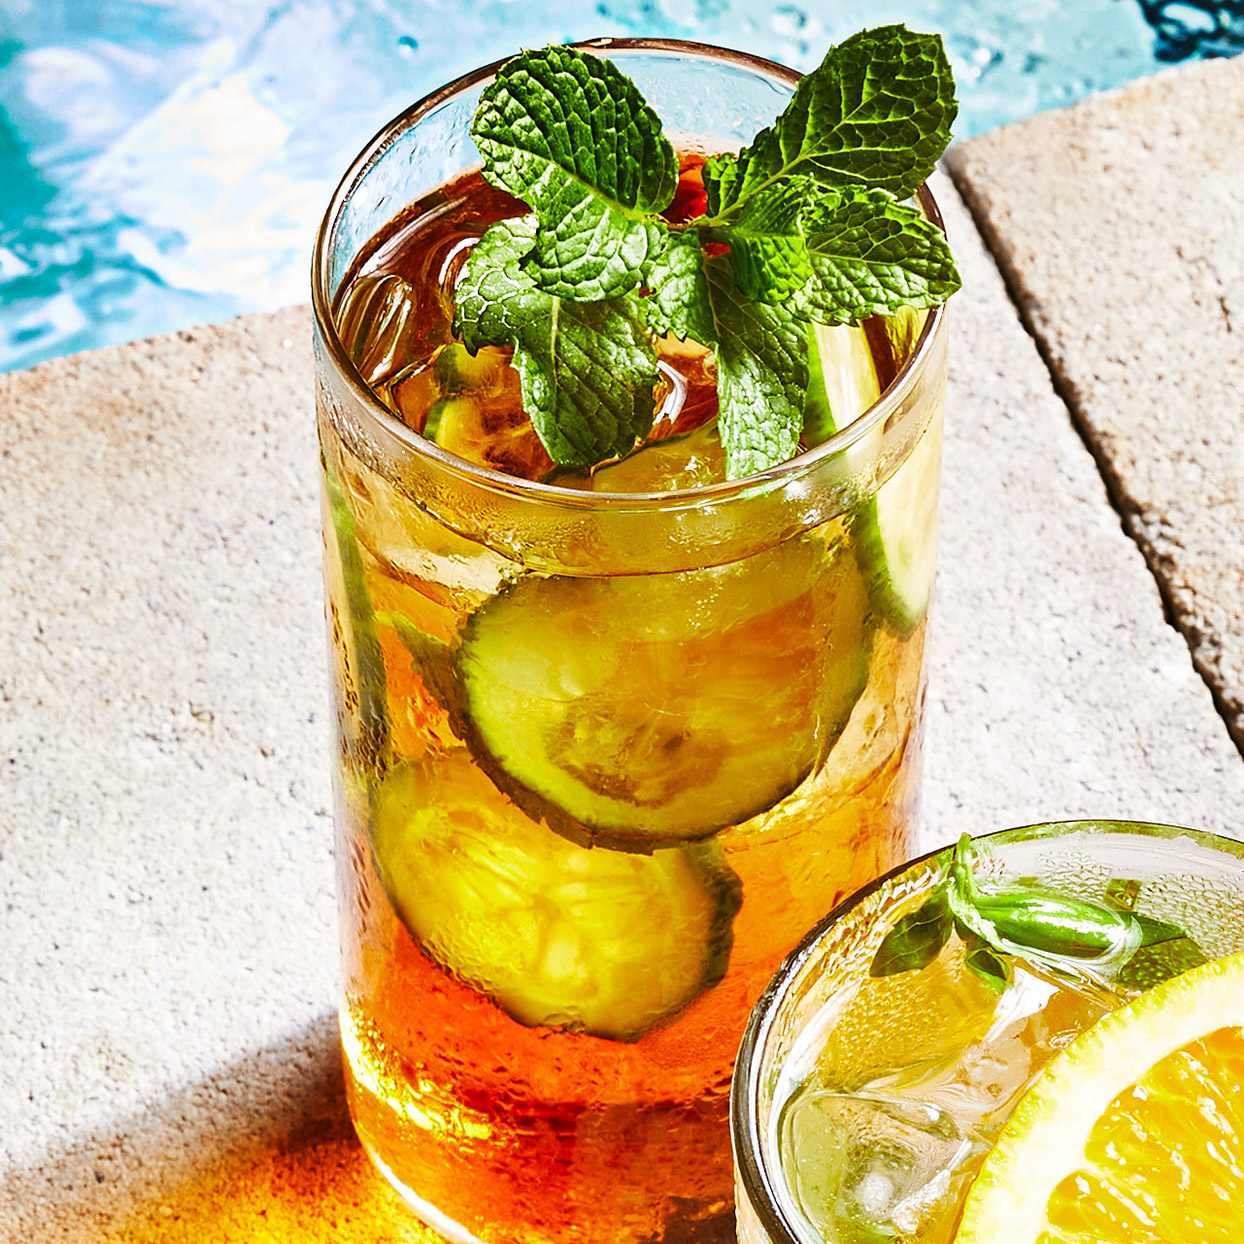 Minty Rejuvenator Infused Water